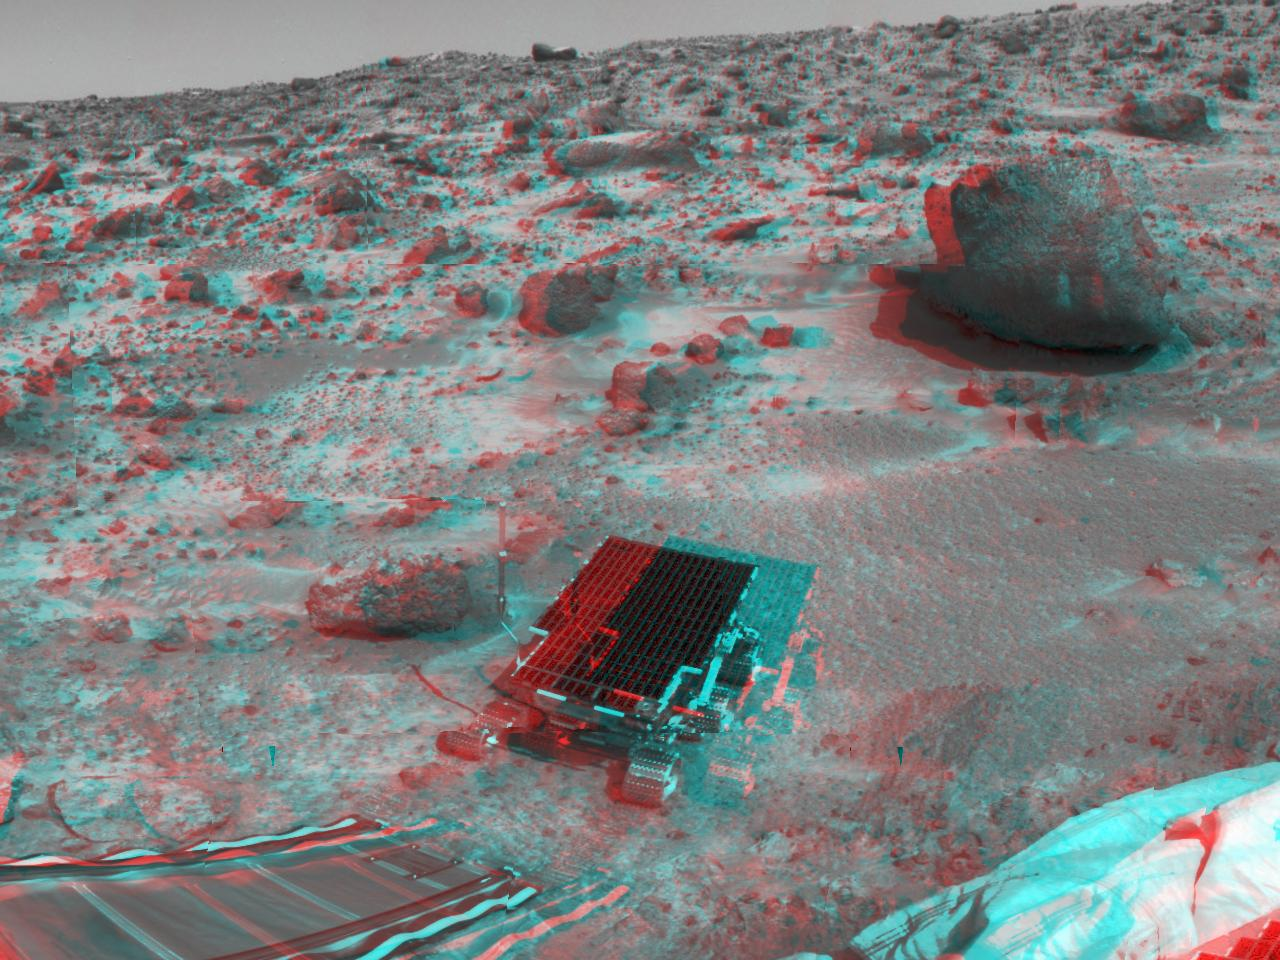 Anaglyph image of Pathfinder